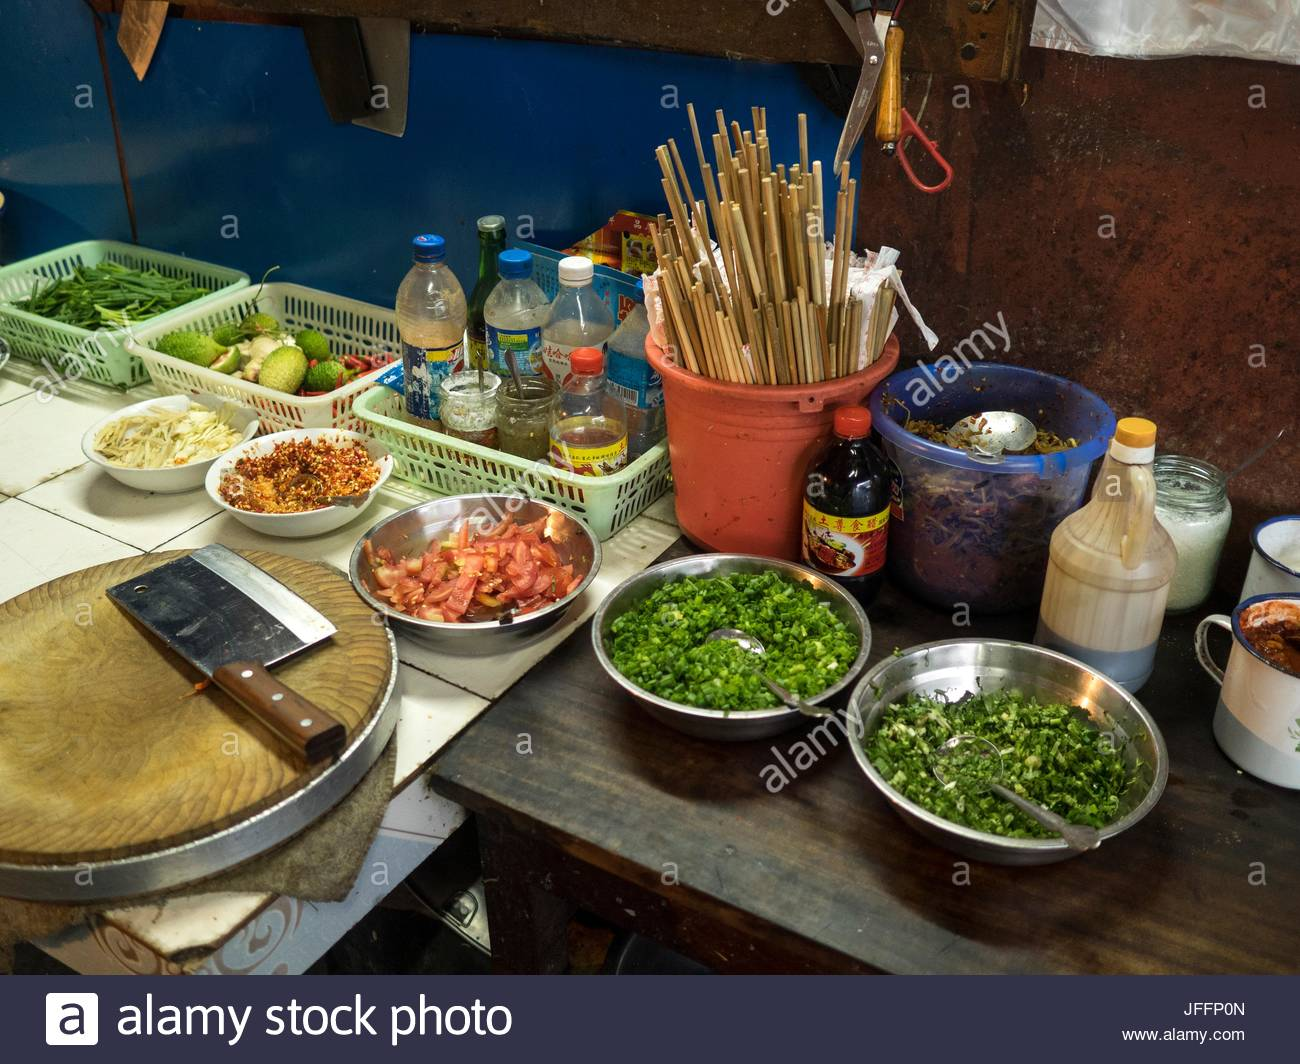 Vegetables, a cleaver and sauces in a kitchen at a restaurant in Sudian. - Stock Image